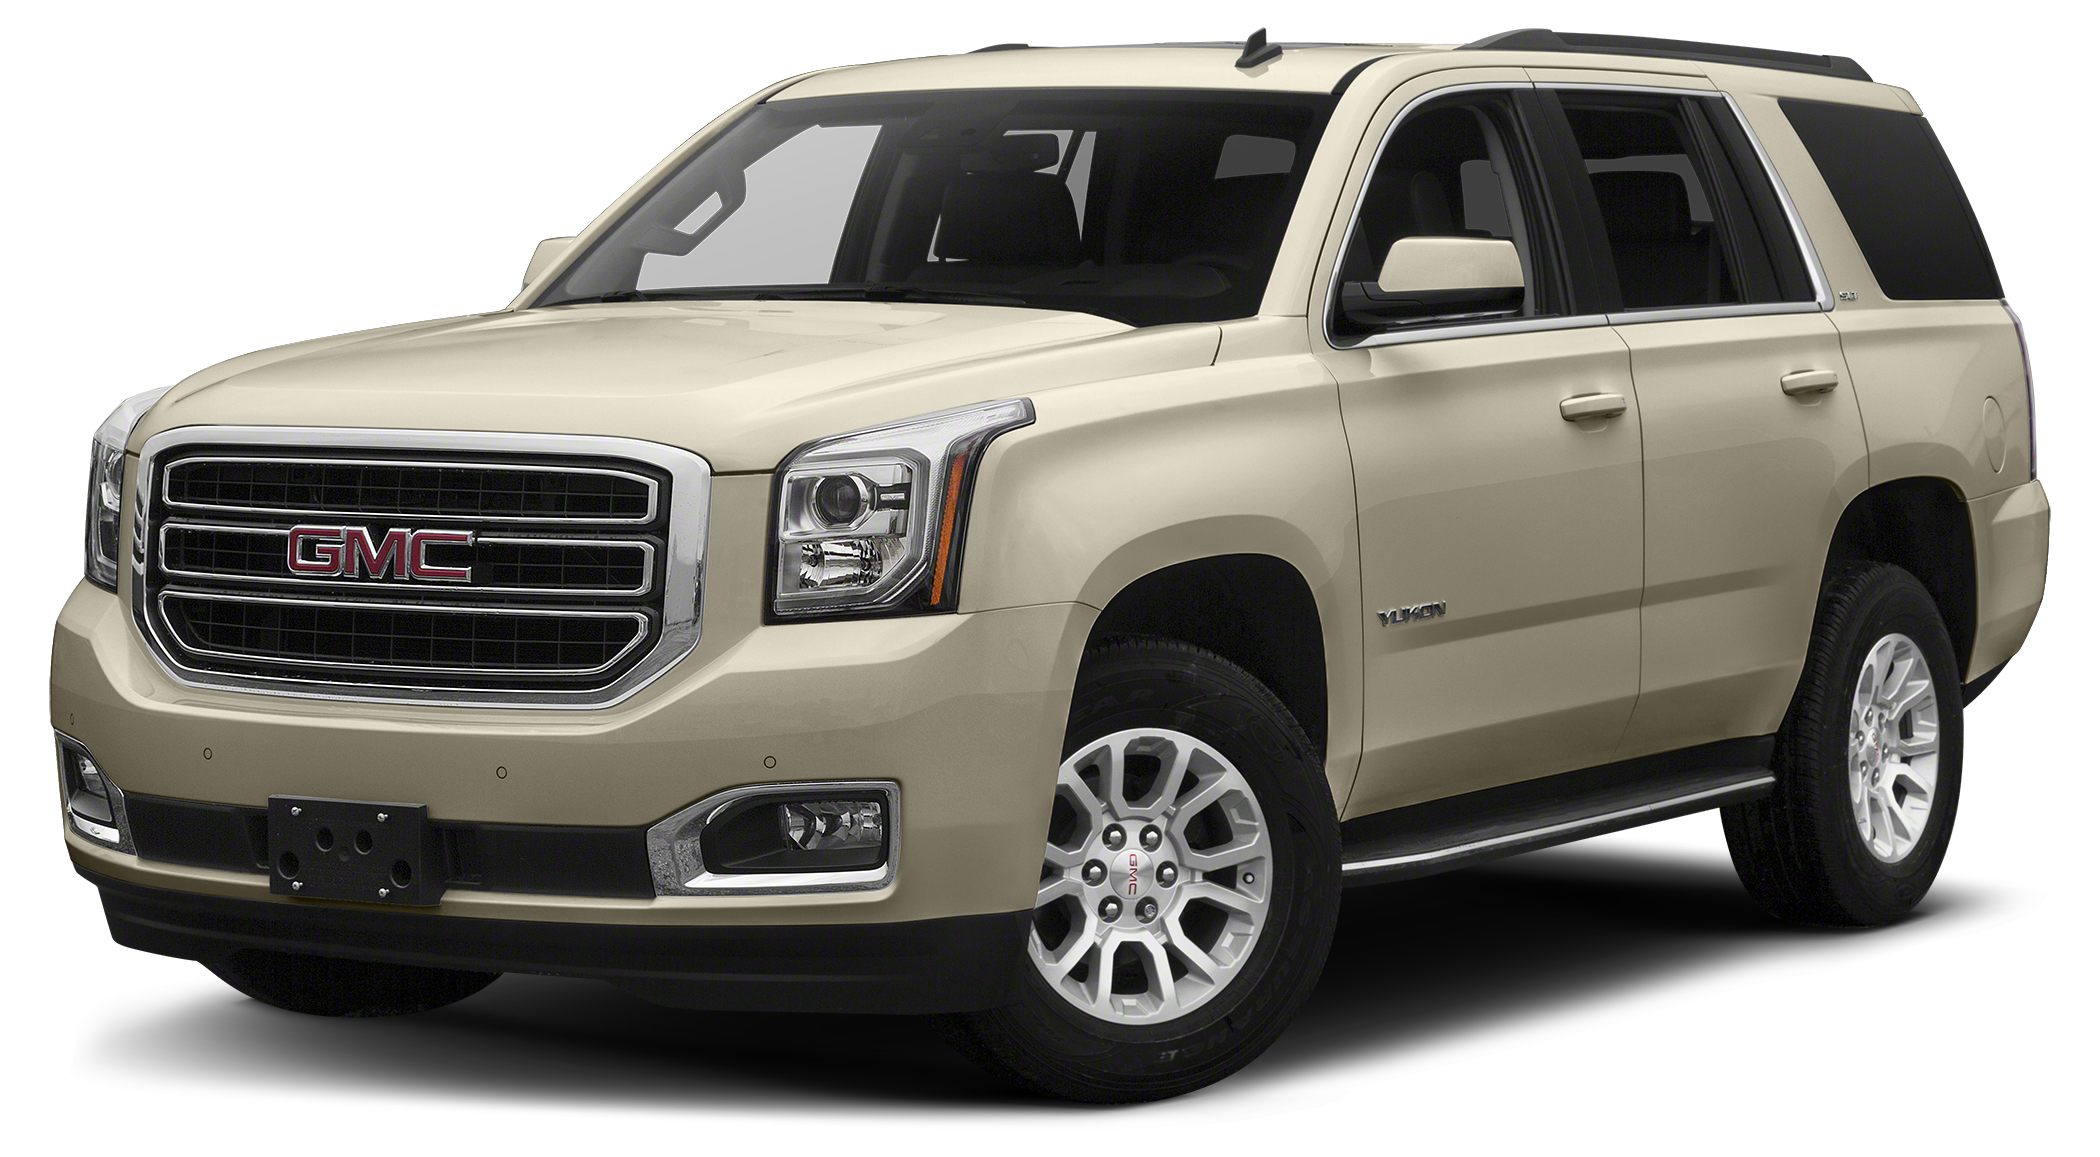 2015 GMC Yukon SLT 3rd Row Seat HeatedCooled Leather Seats Back-Up Camera Overhead Airbag Tow